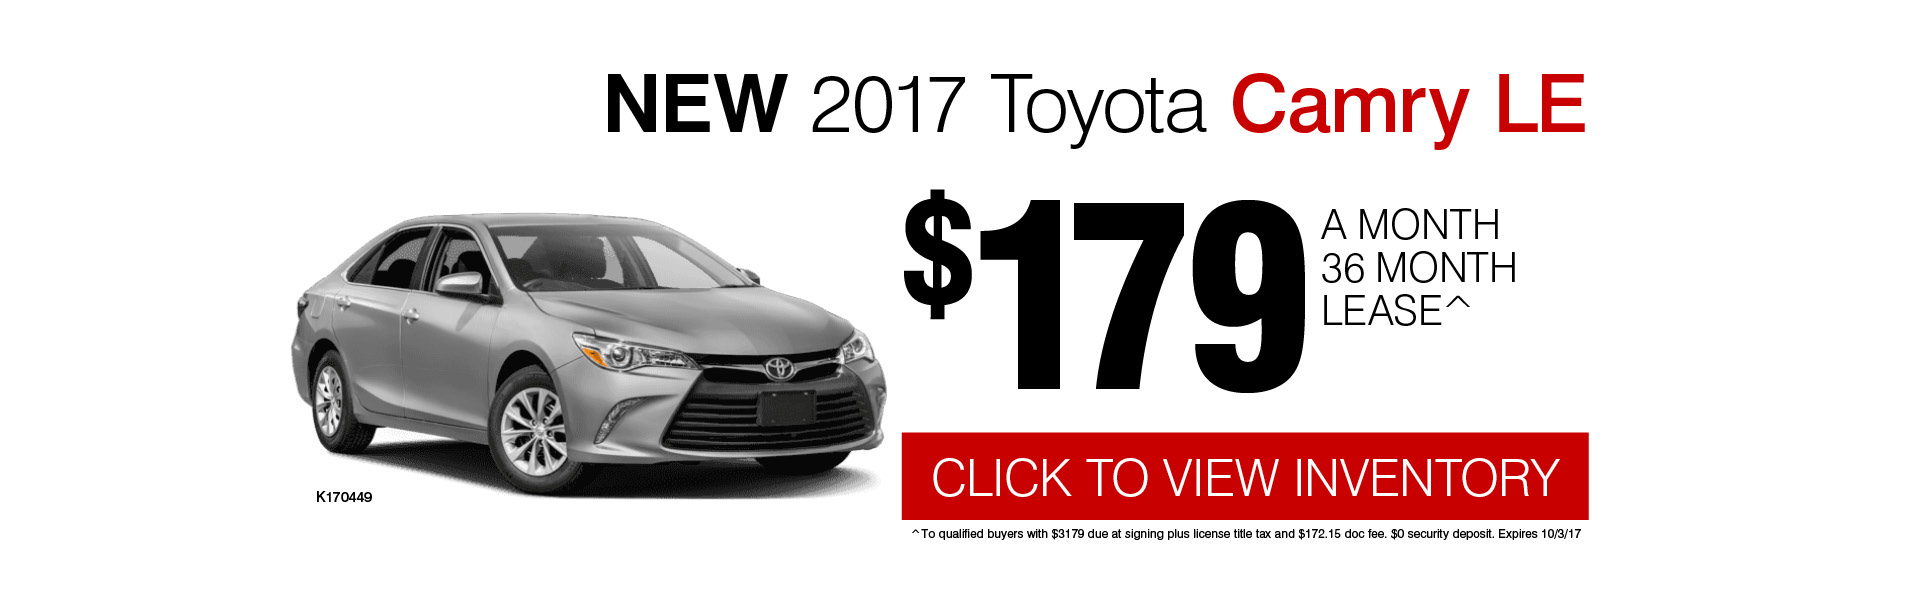 2017 Toyota Camry LE Low Payment Lease Special in Chicago, IL